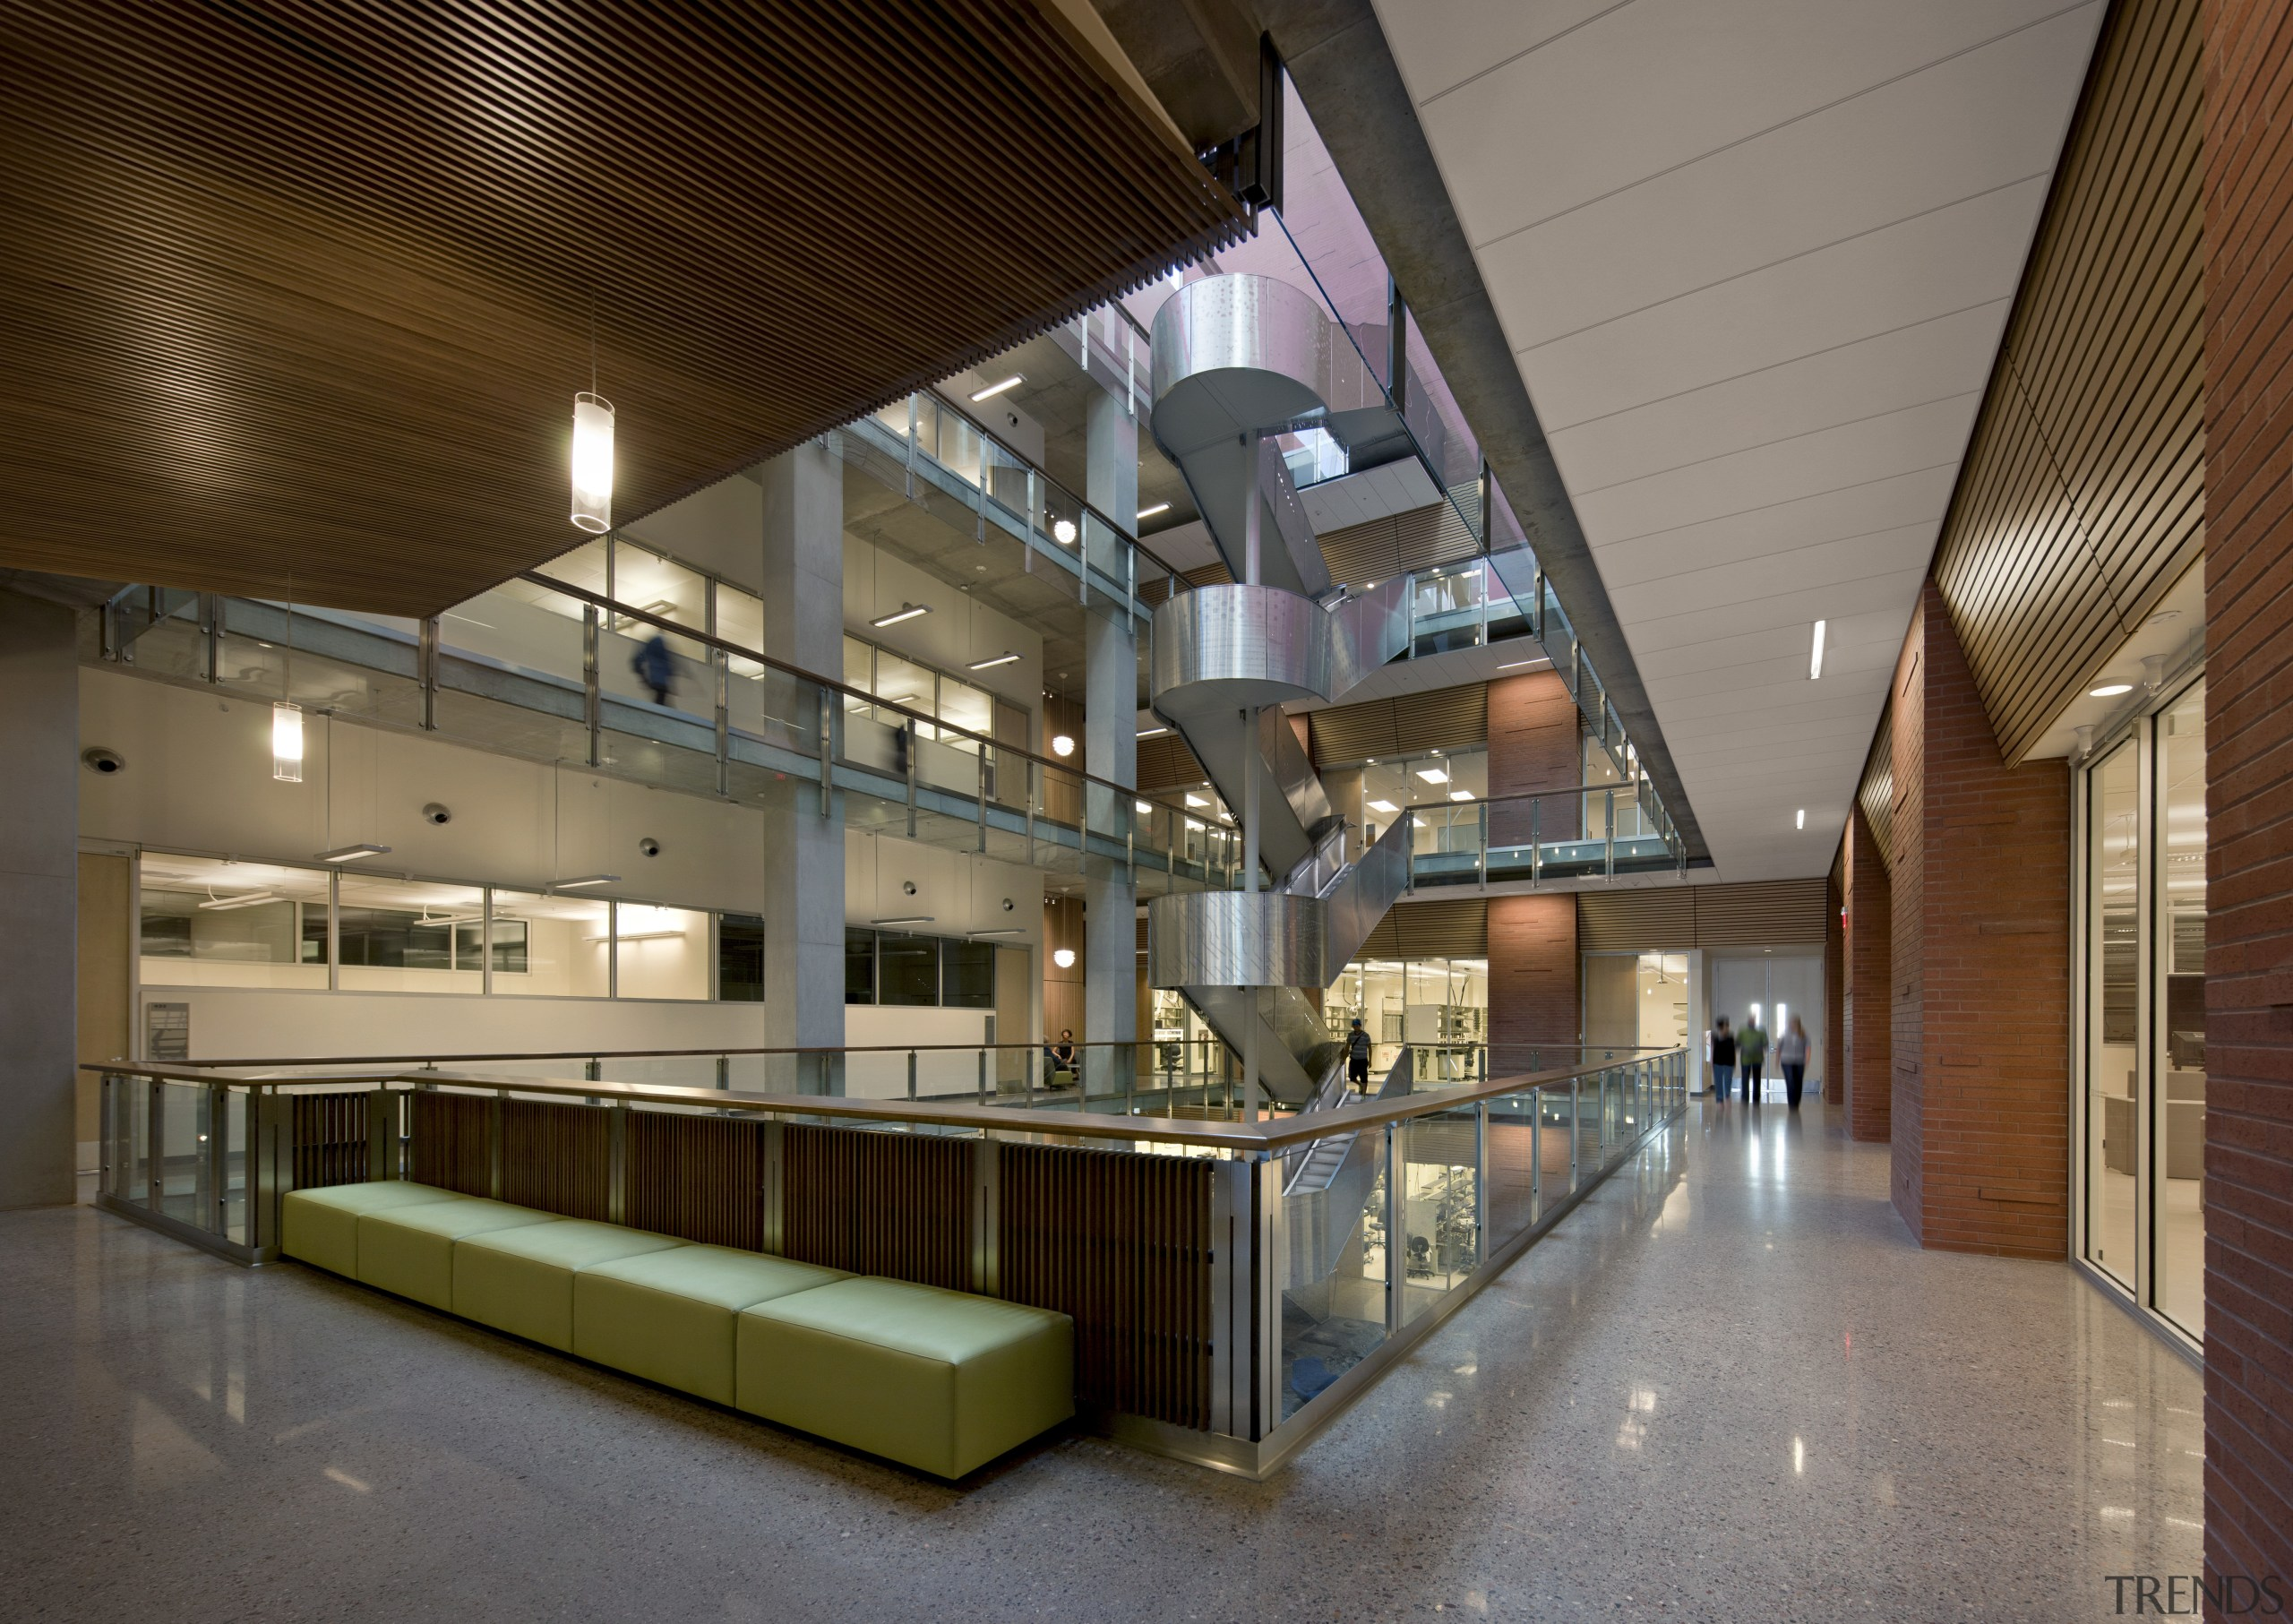 Arizona State University Interdisciplinary Science and Technology Building architecture, ceiling, interior design, lobby, brown, gray